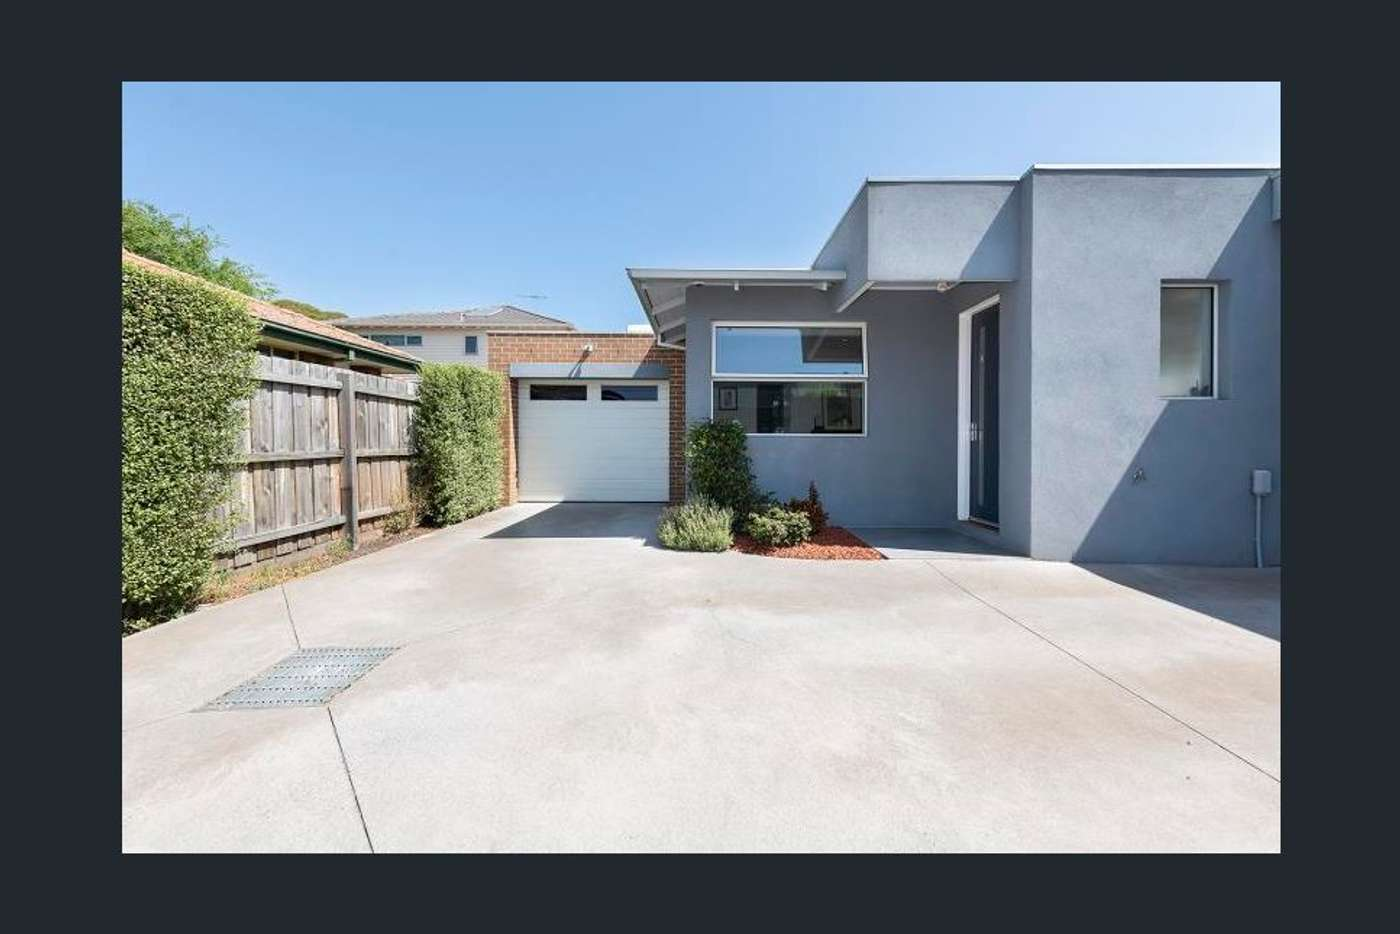 Main view of Homely house listing, 3/171 Hudsons Road, Spotswood VIC 3015